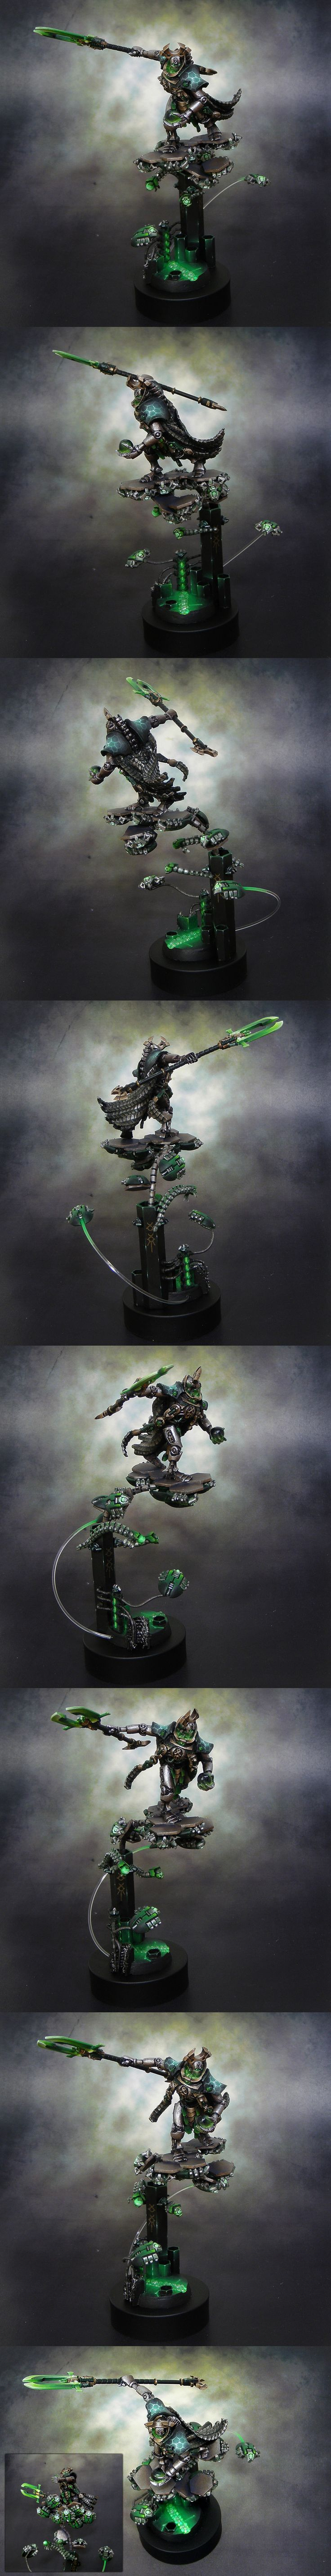 Necron Overlord-Look at how cool the scarabs are that hold up the little platforms.    Warhammer 40k Miniatures.